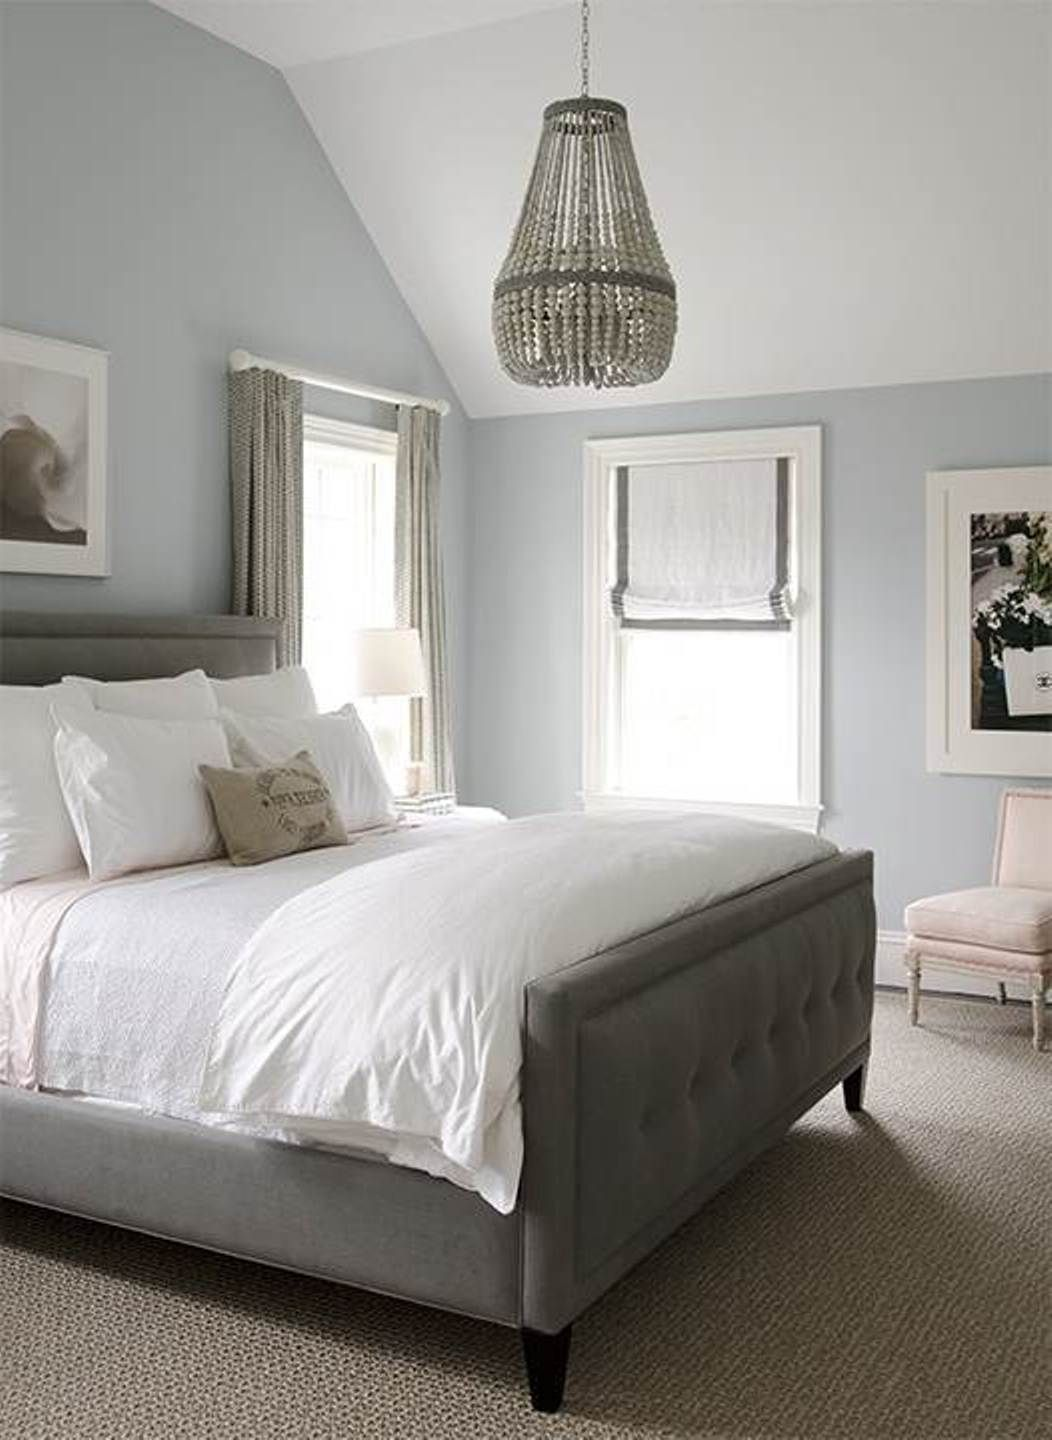 Carpets For Bedroom Style Interior love the grey. cute master bedroom ideas on a budget : decorating